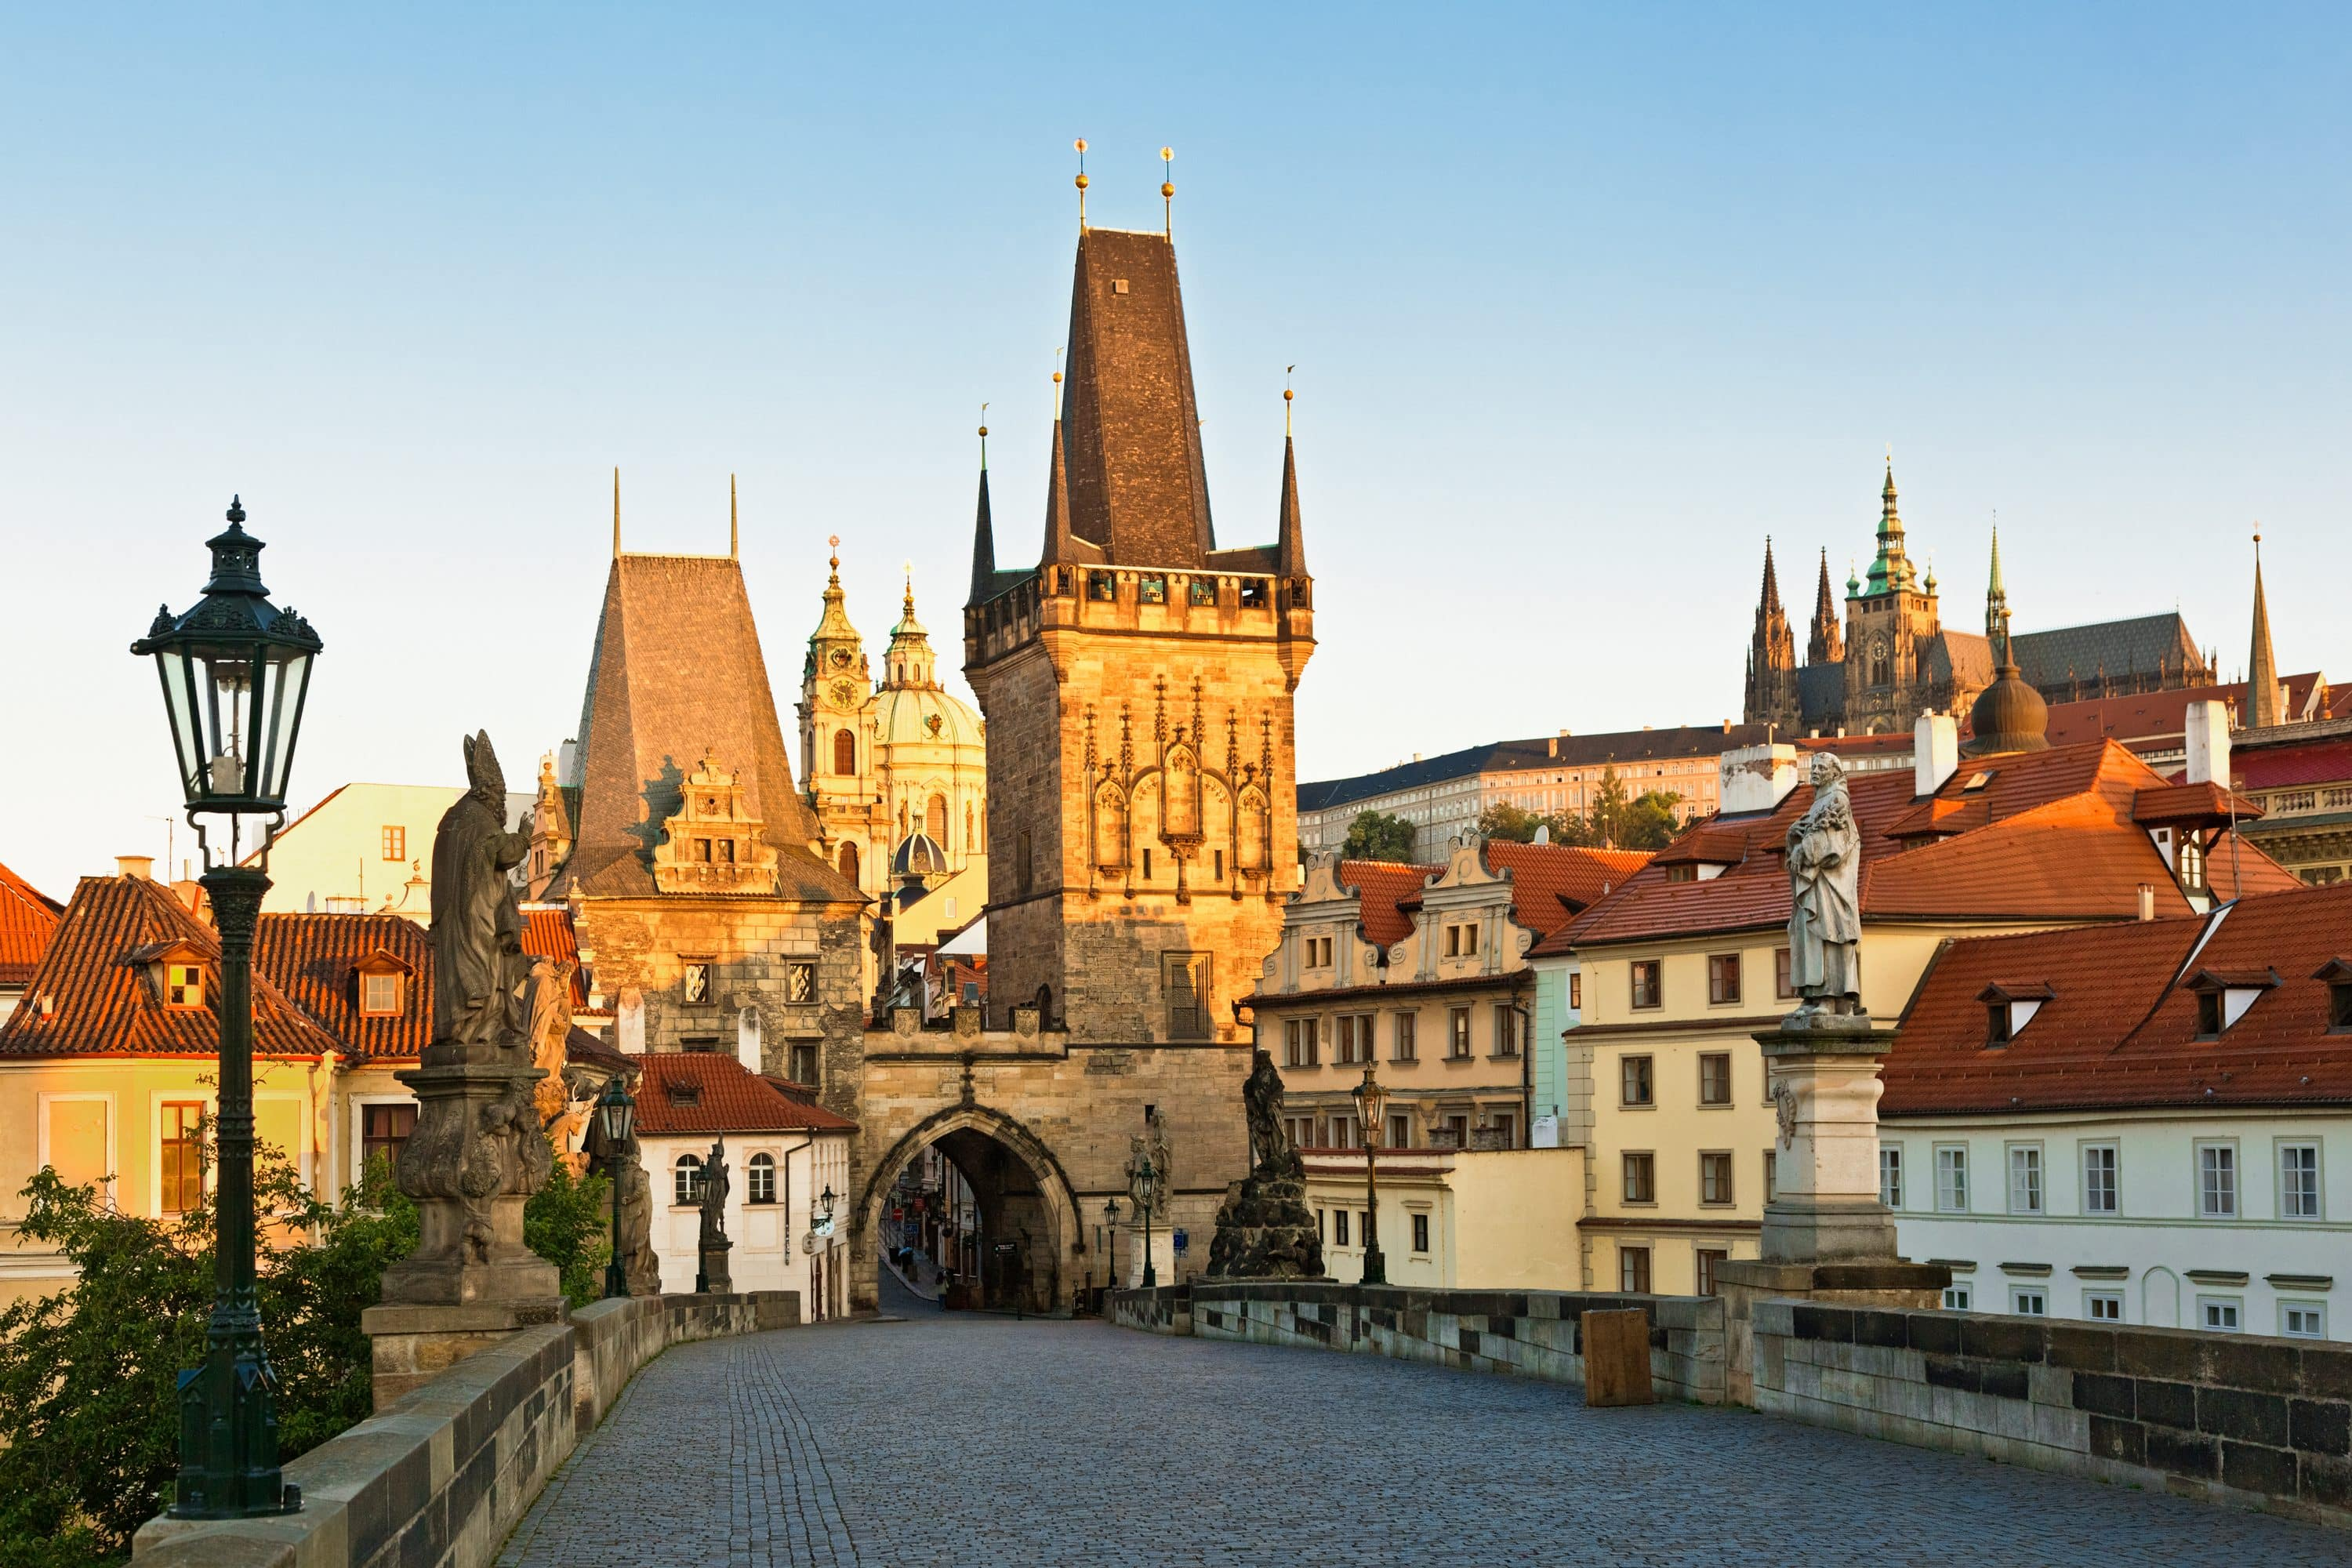 Charles Bridge, backdropped by Prague's Old Town